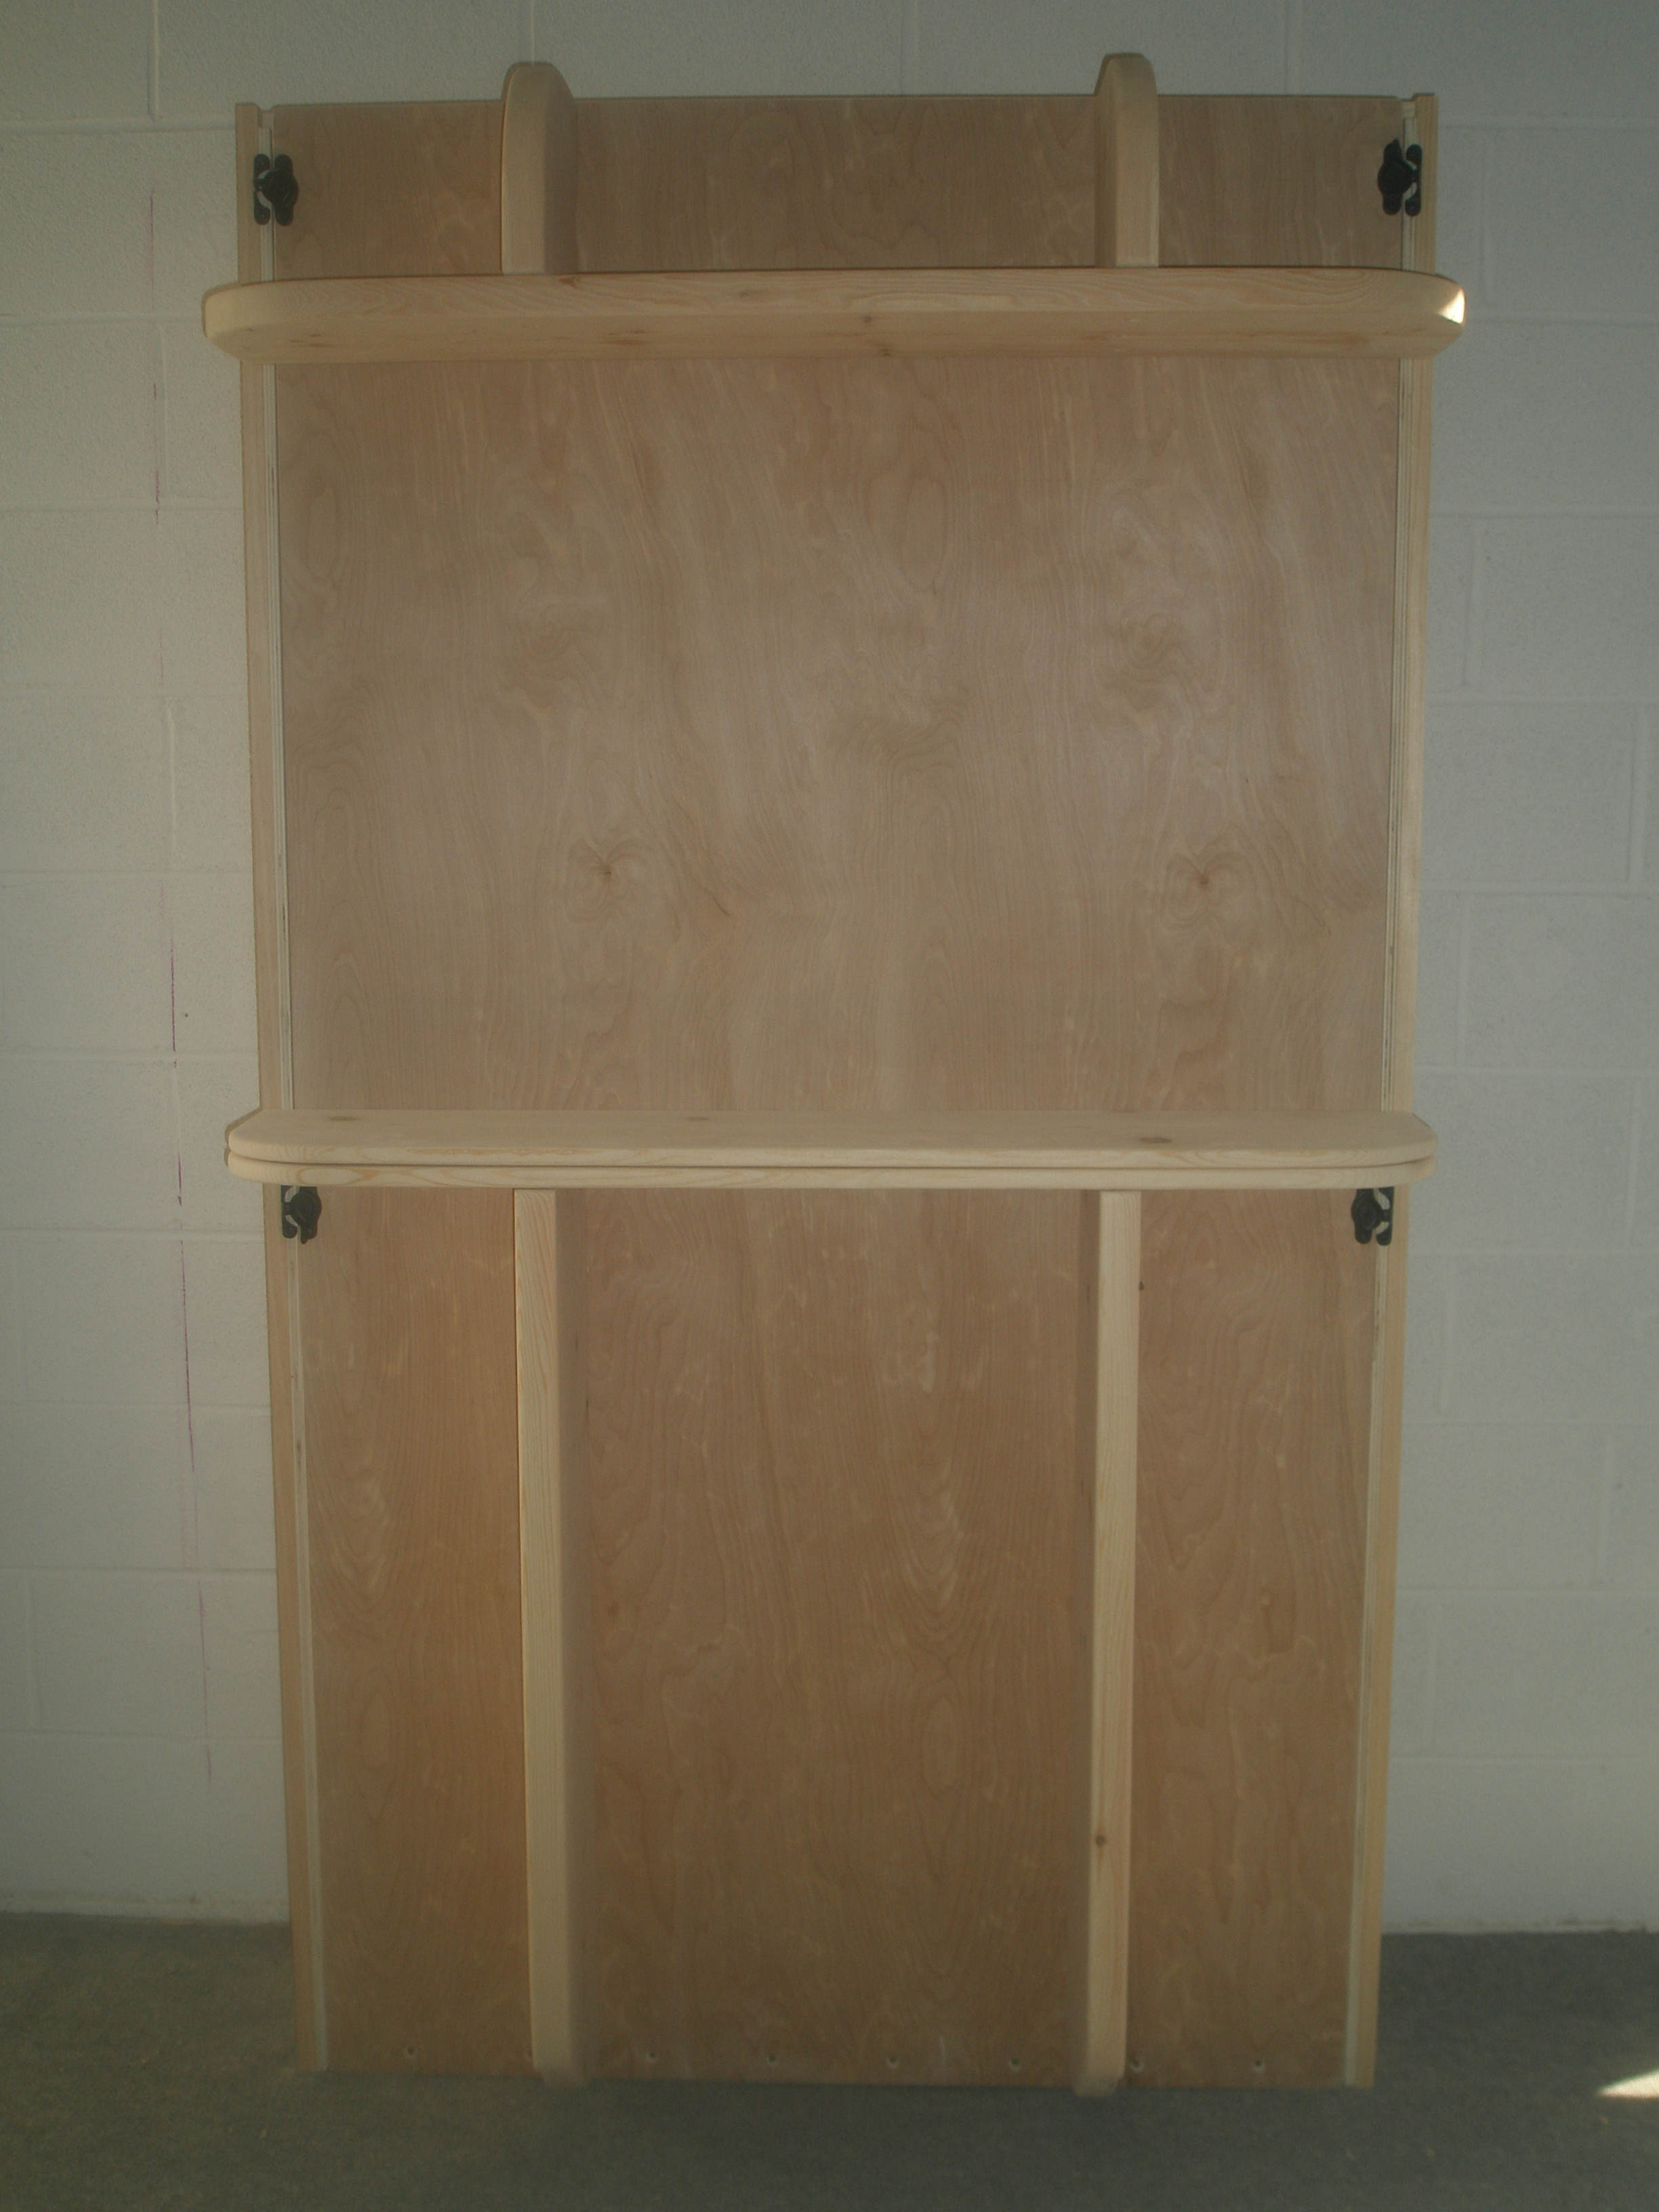 DIY Vertical Twin Lori Wall Bed | Documents and Forms ...